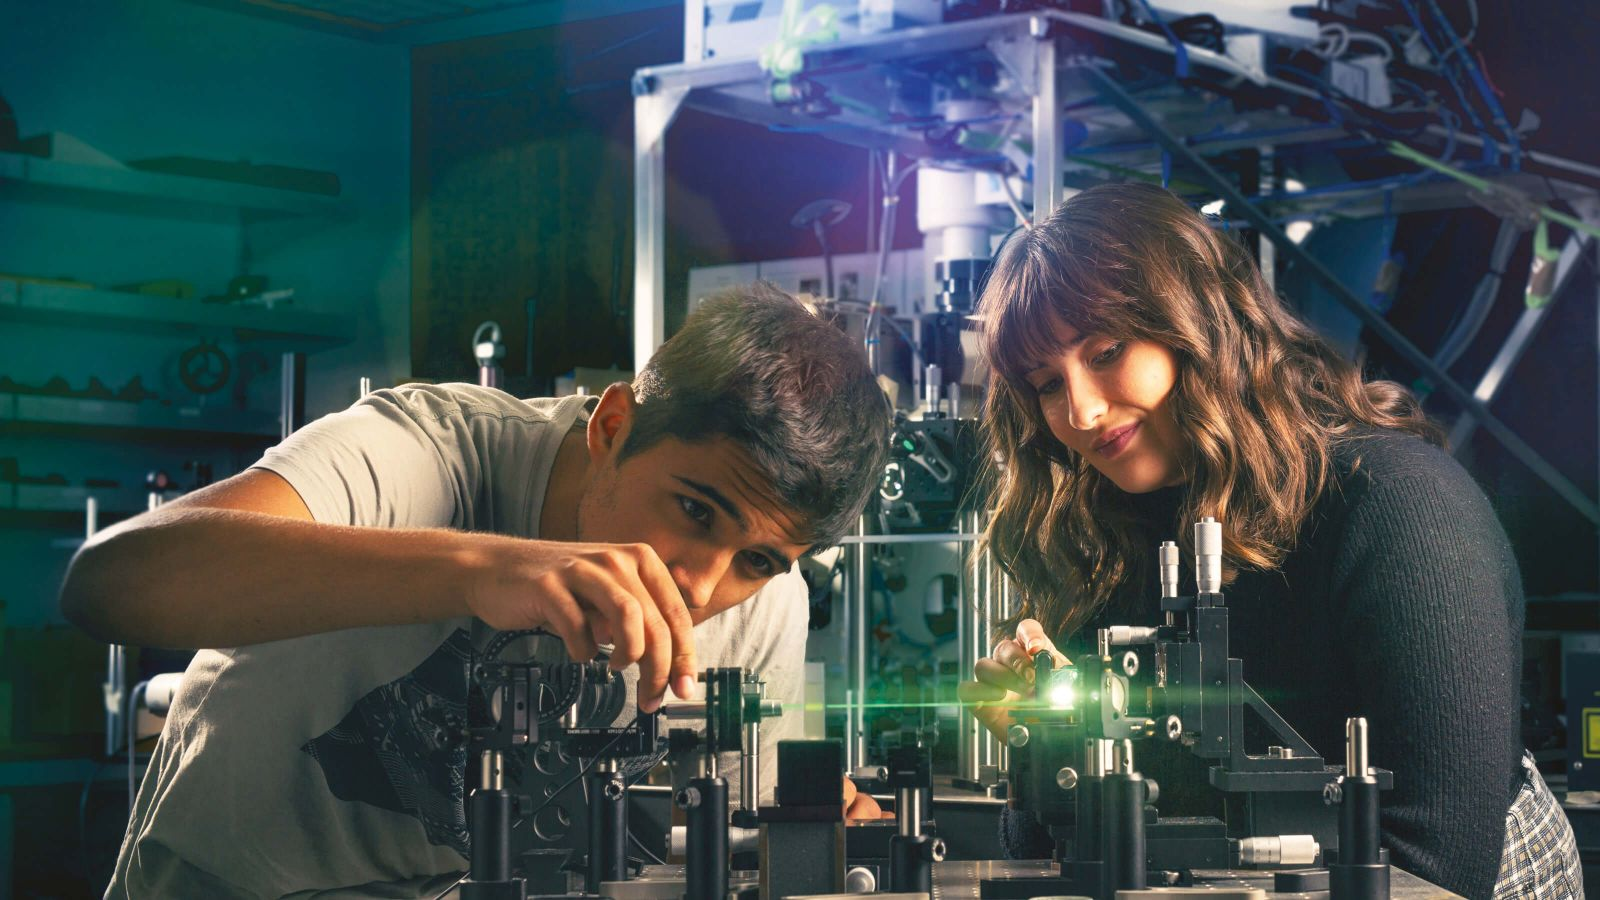 Science students Aleksa Djorovic and Phoebe McDougall experiment with light in Victoria's Raman Laser Laboratory.